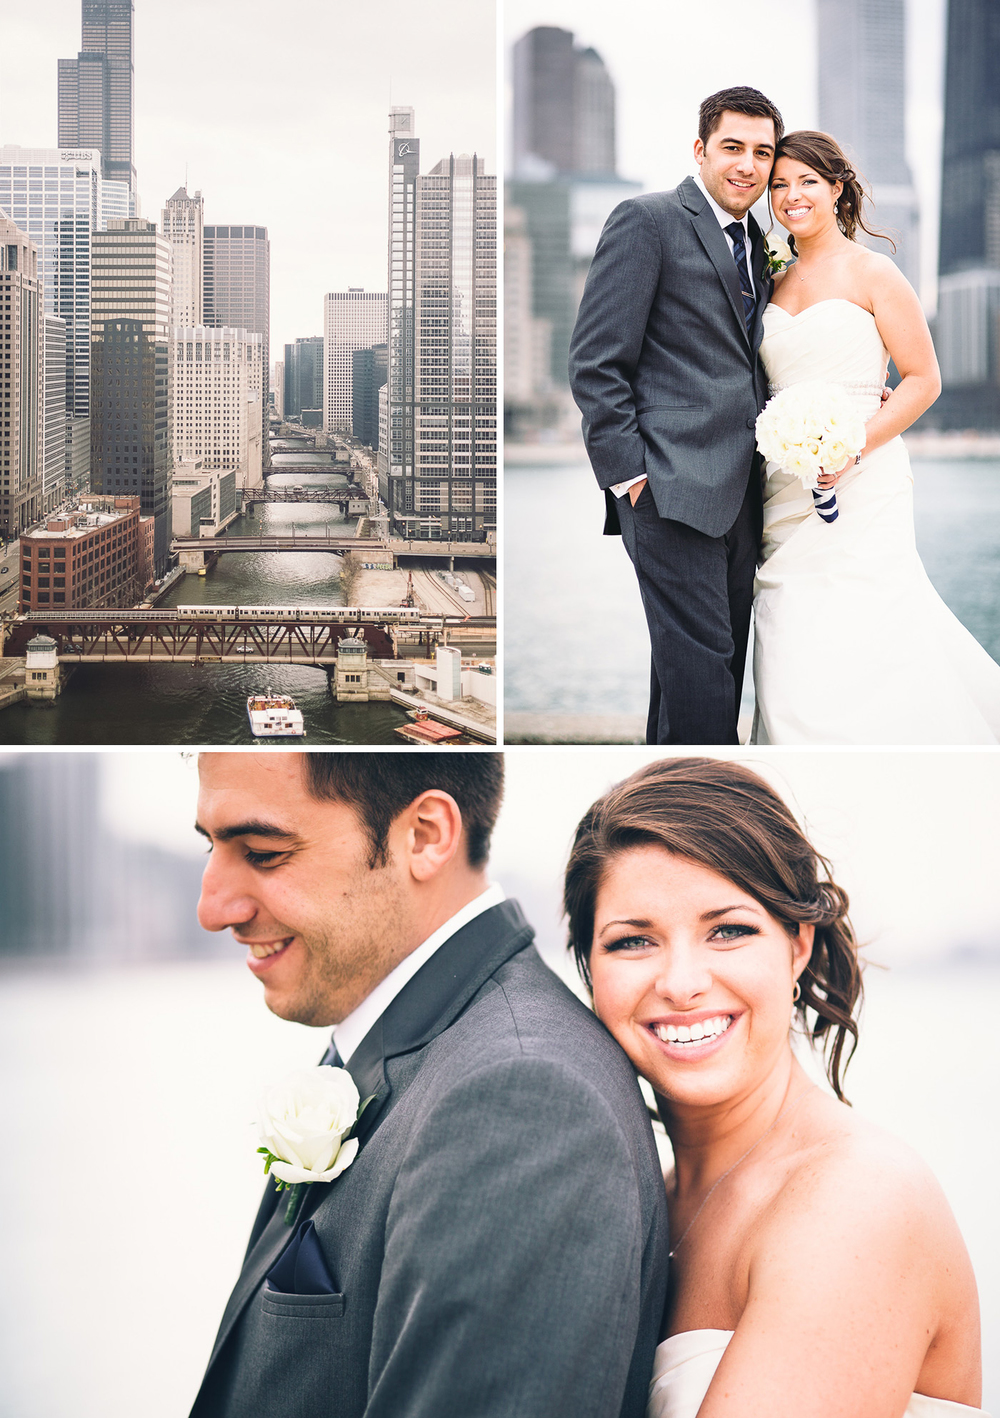 Chicago_Fine_Art_Wedding_Photography_losurdo.jpg